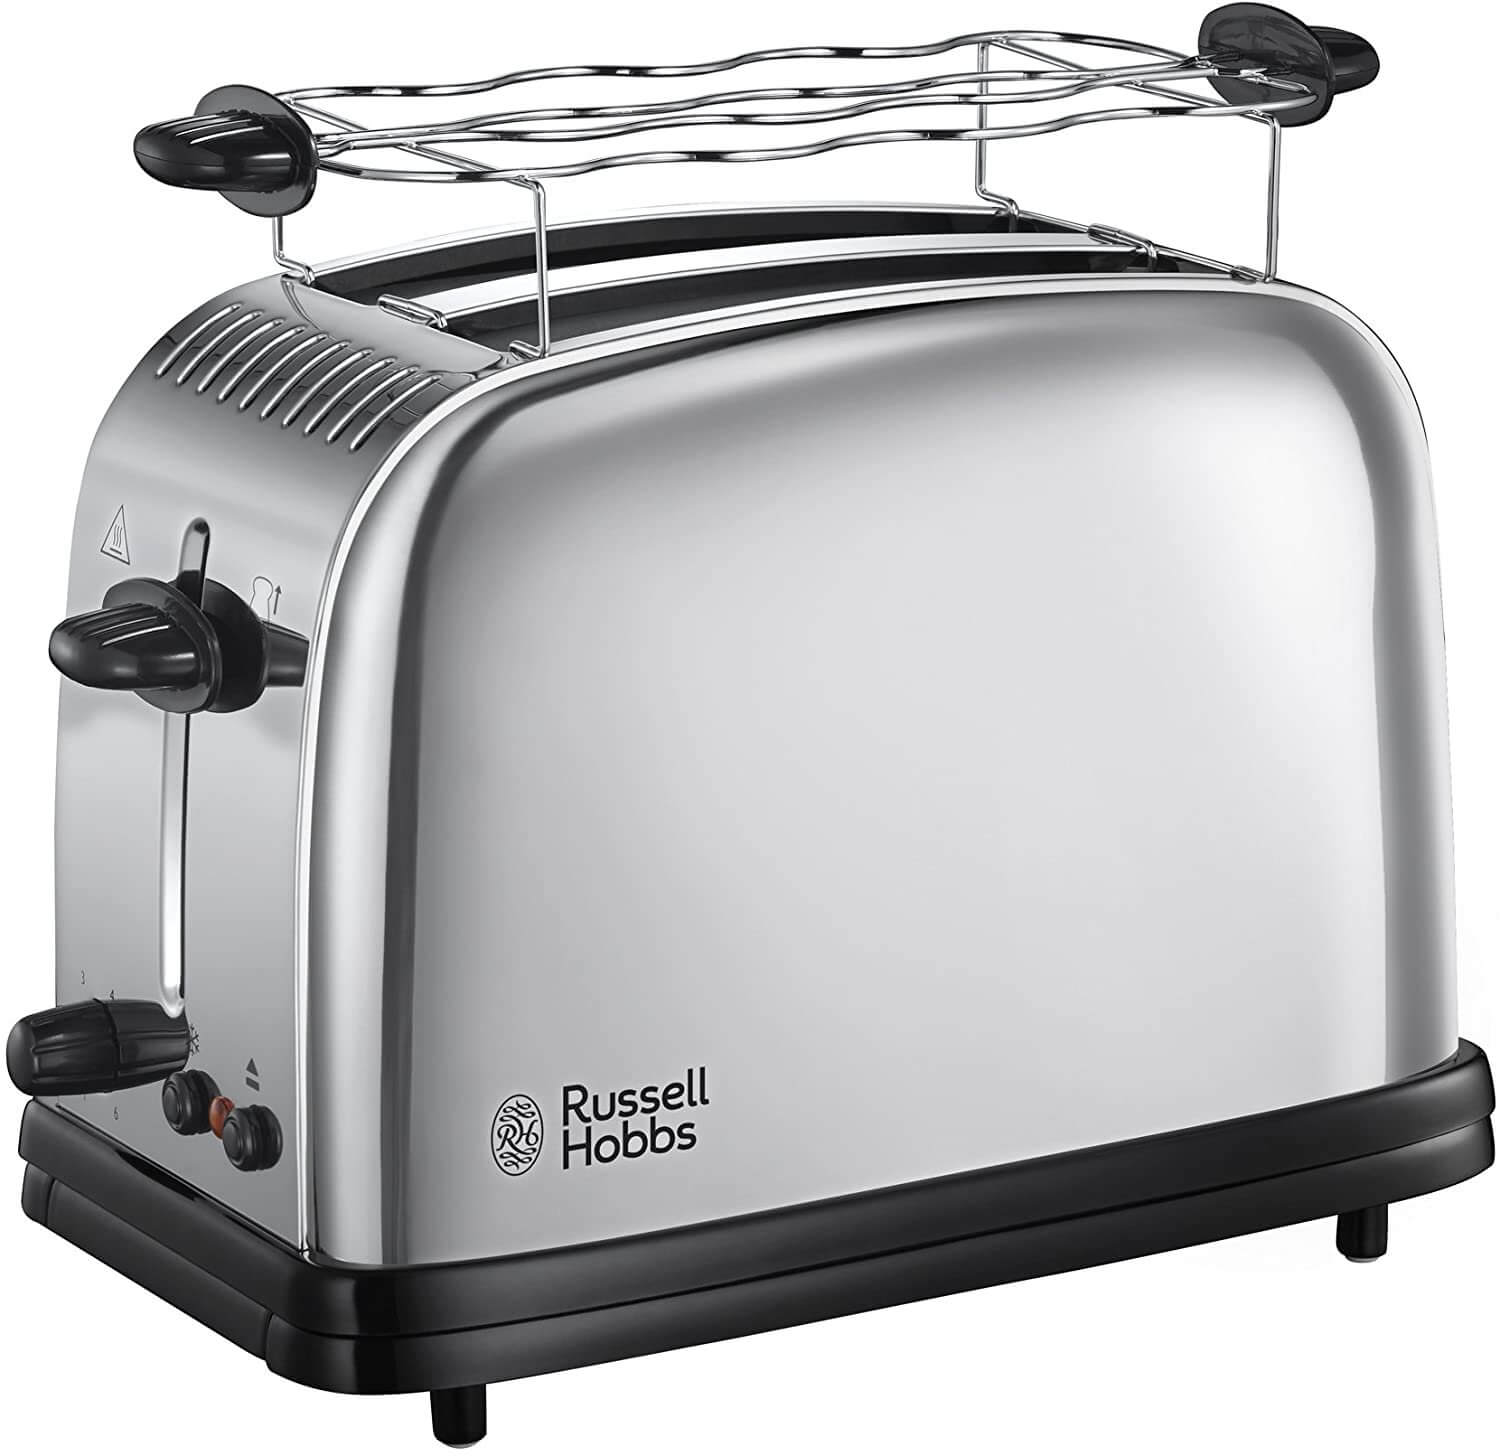 Toster Russel Hobbs Victory 23310-56